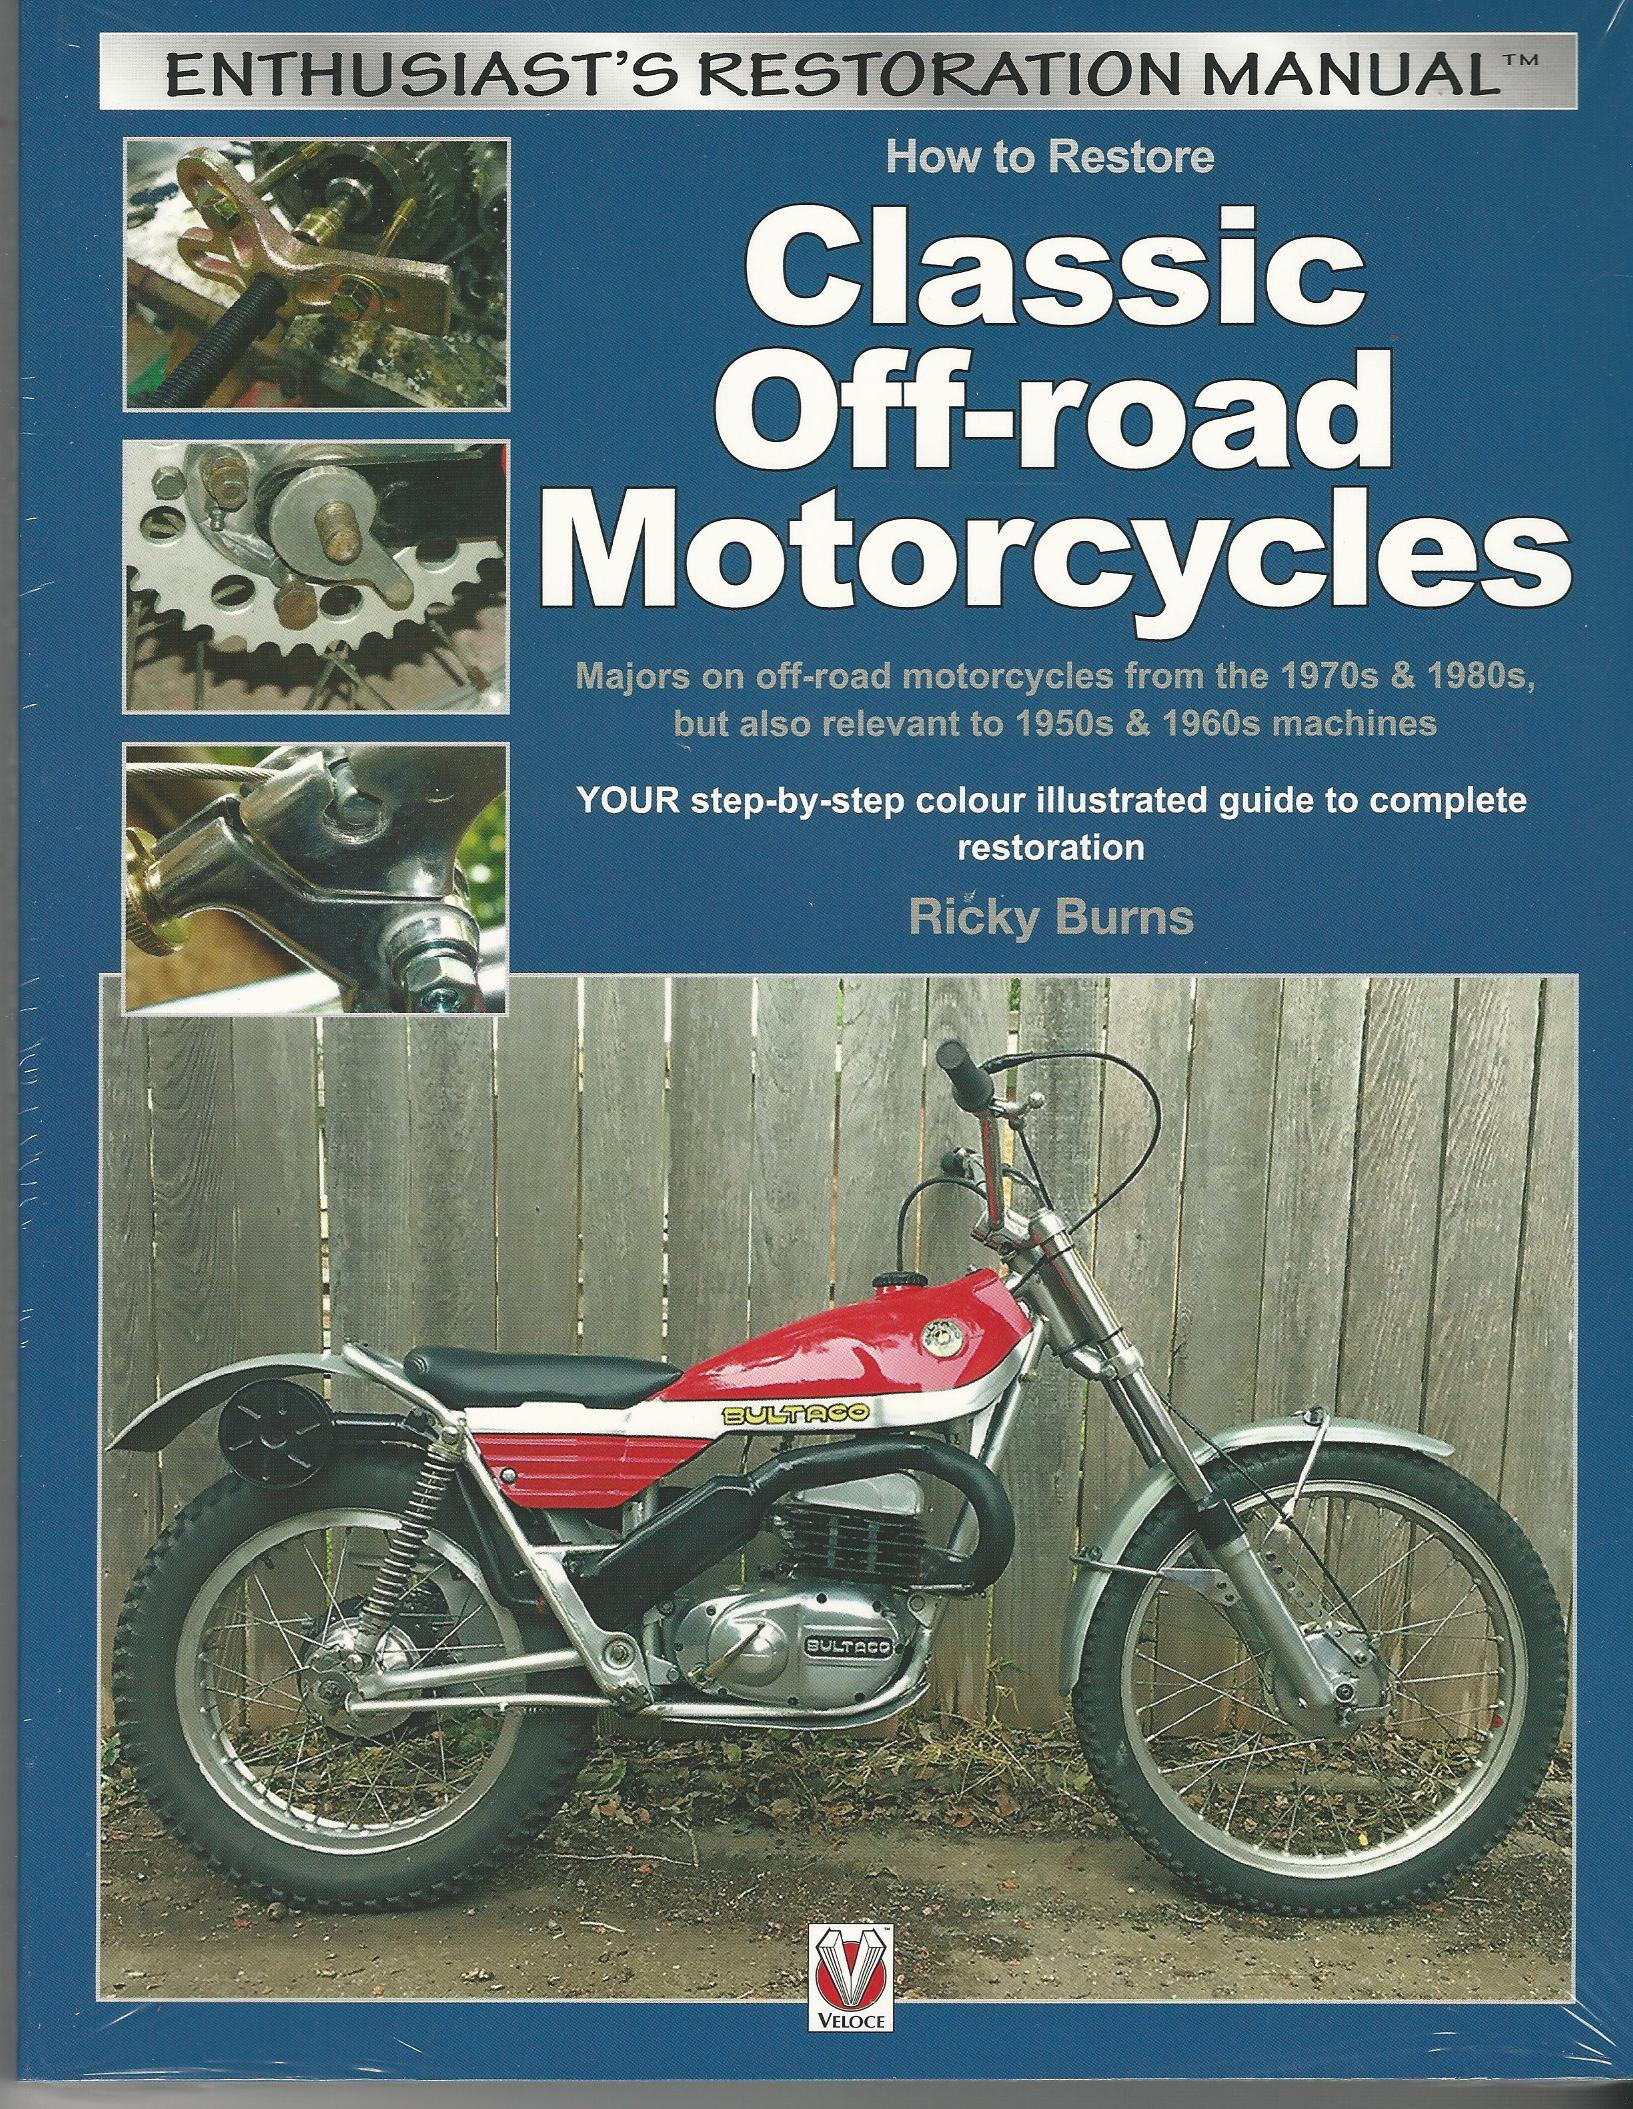 Image for How to Restore Classic Off-road Motorcycles: Majors on off-road motorcycles from the 1970s & 1980s, but also relevant to 1950s & 1960s machines (Enthusiast's Restoration Manual)